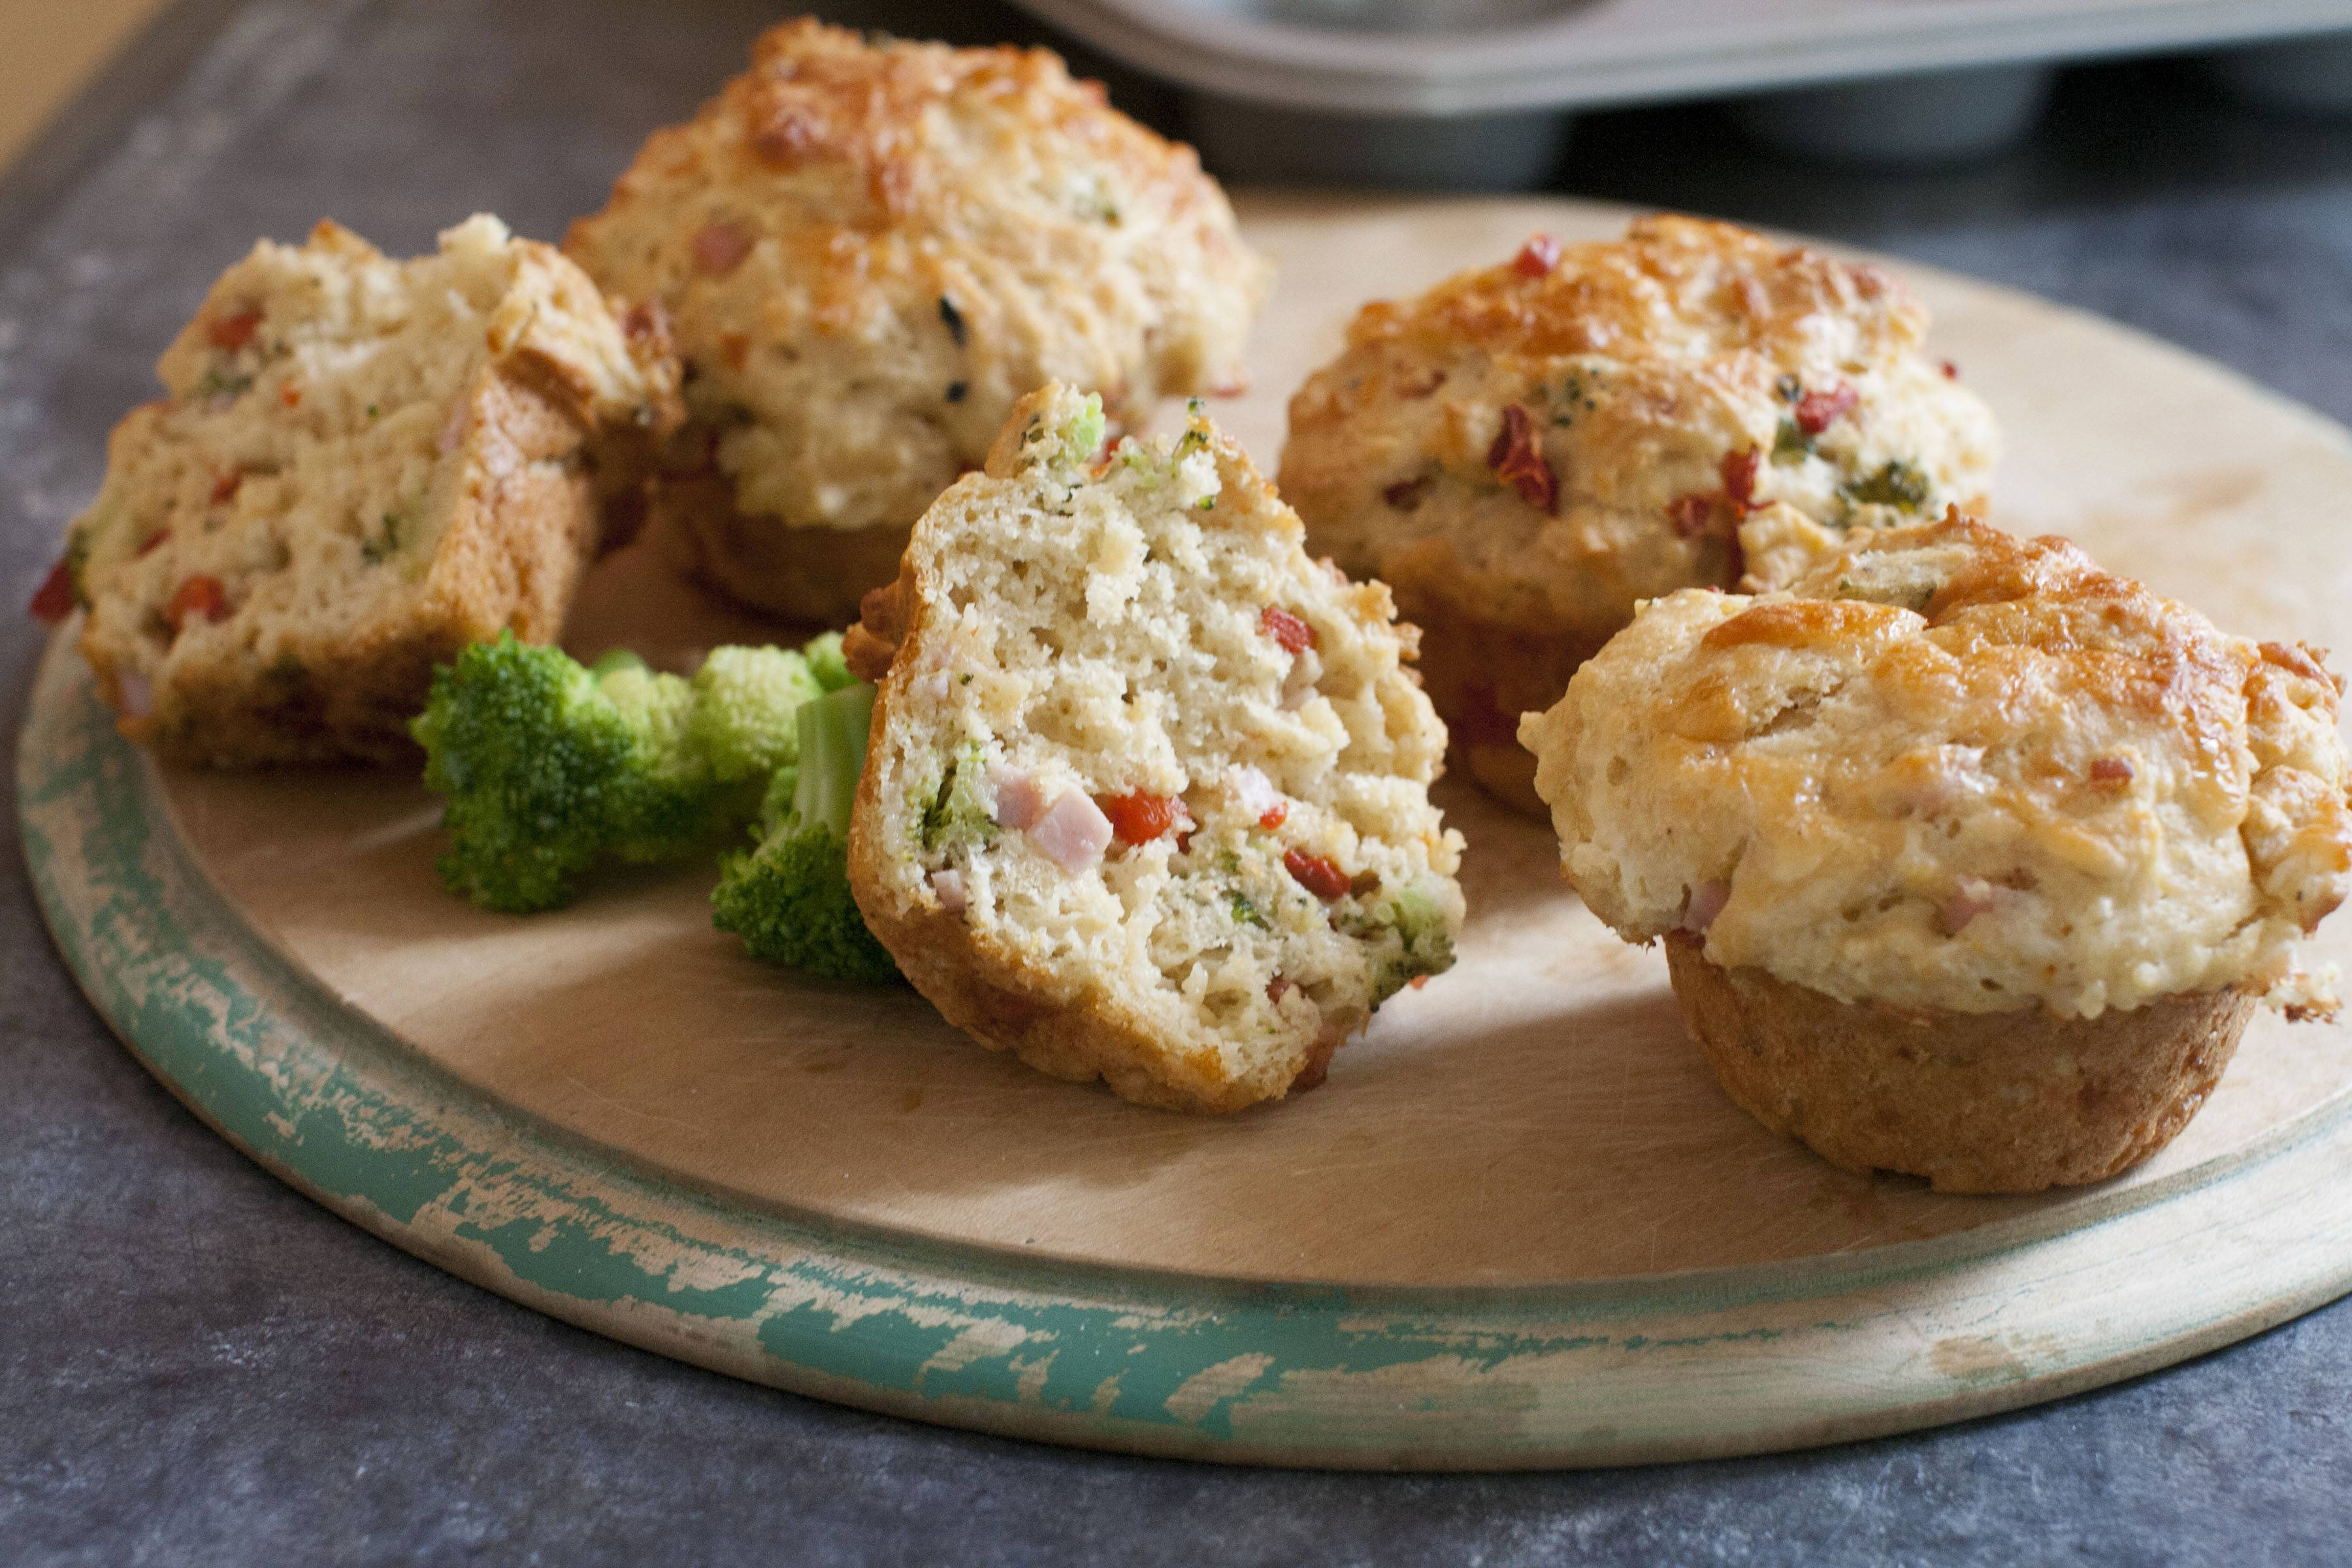 Broccoli Cheddar Breakfast Muffins get the school day, or work day, off to a healthy start.